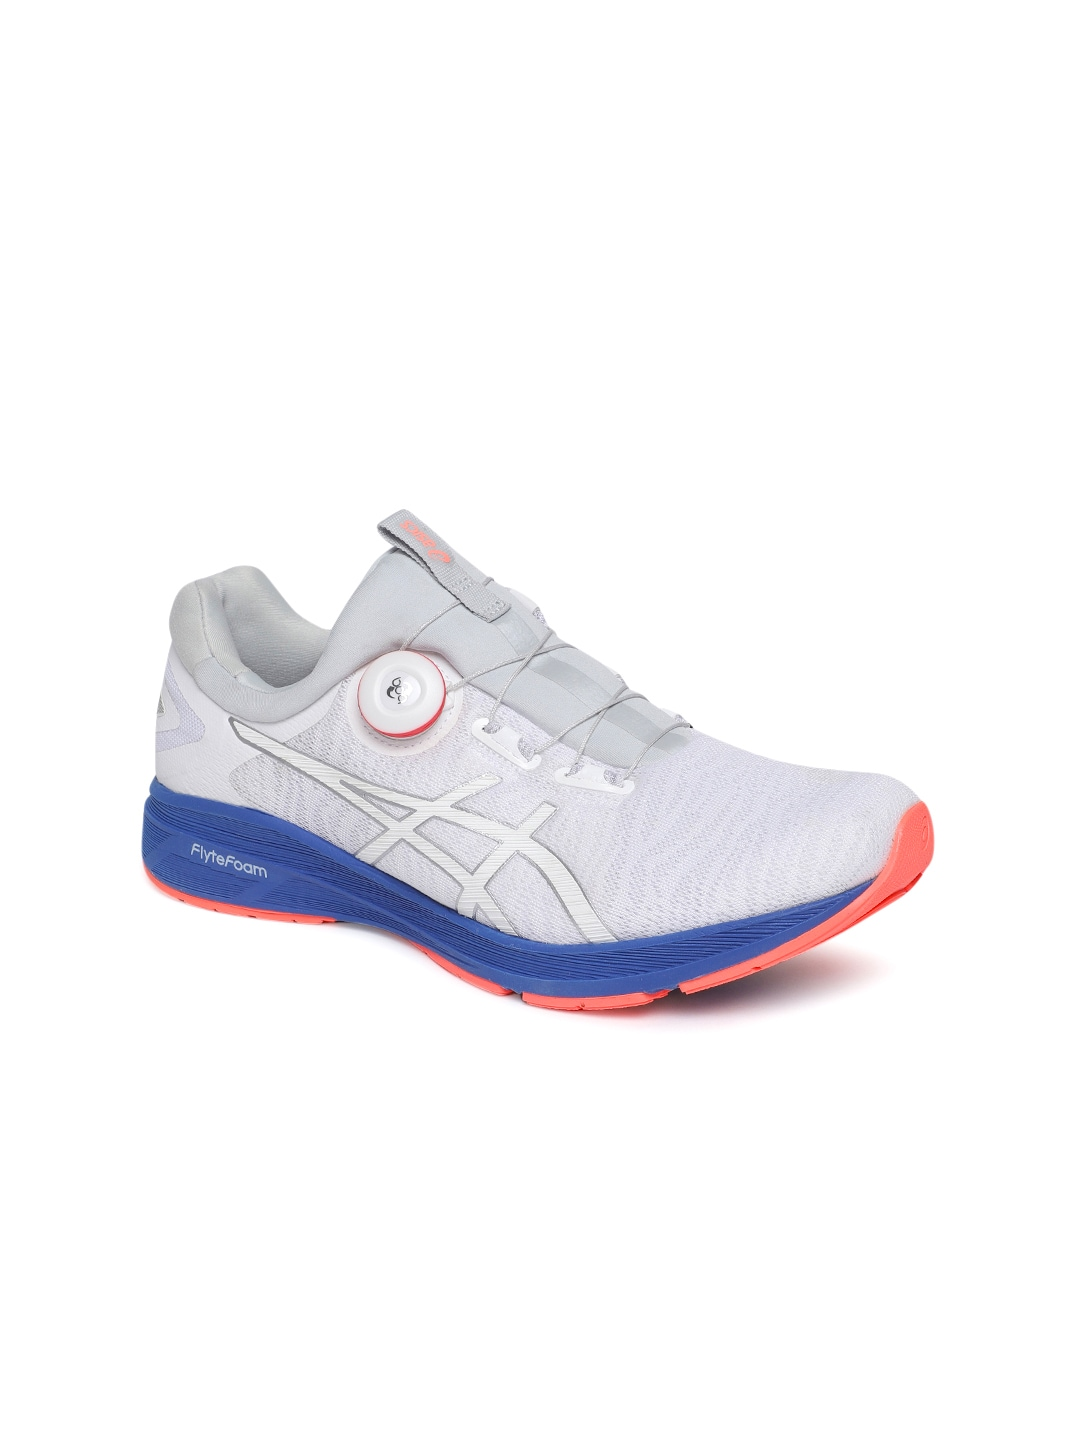 premium selection 441ef dbced Sports Shoes for Men - Buy Men Sports Shoes Online in India - Myntra